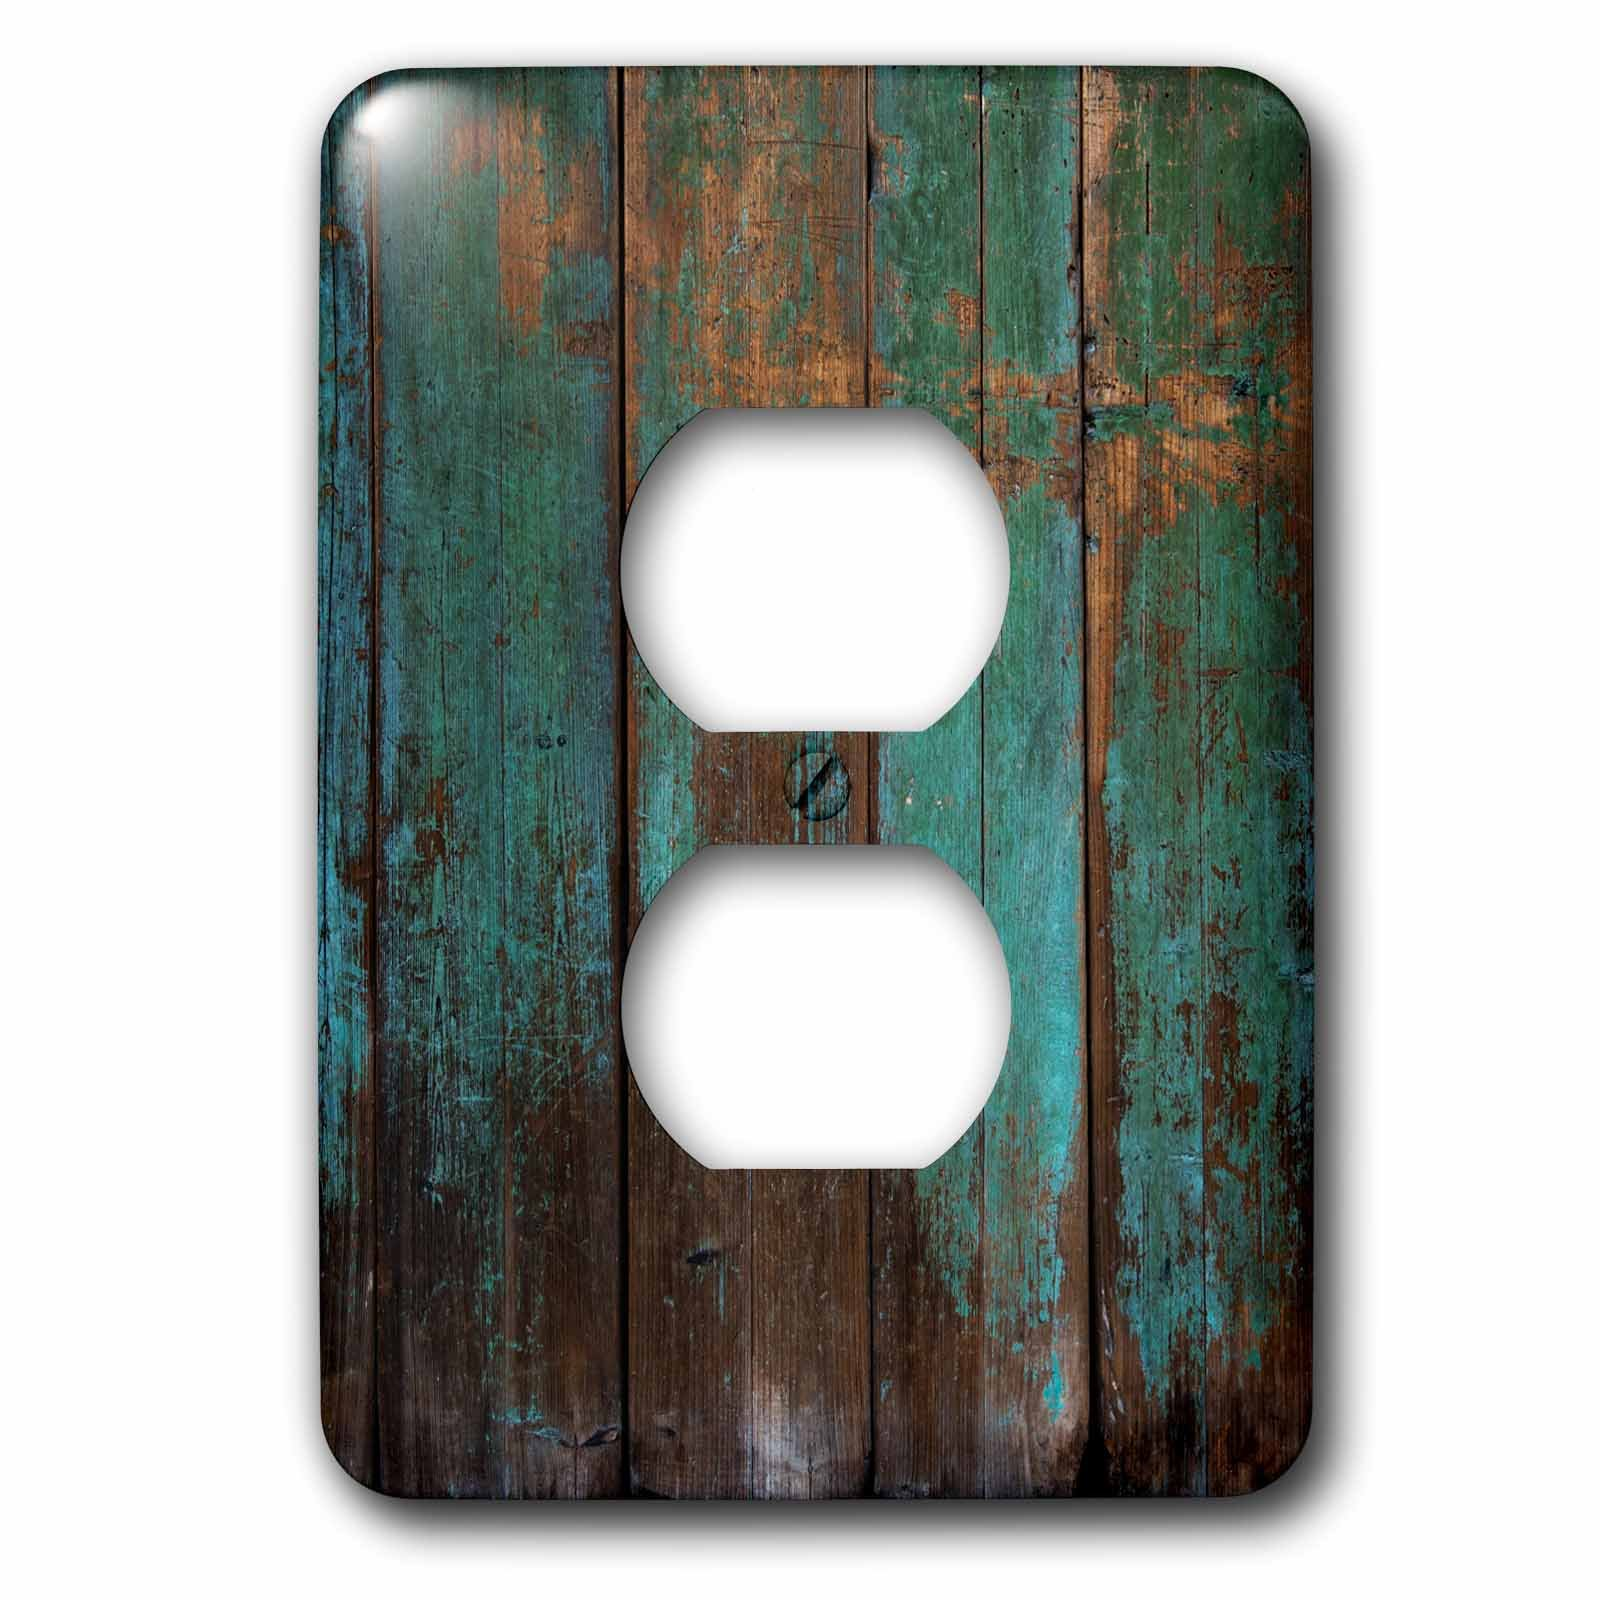 3dRose lsp_239940_6 Teal Distressed Country Wood Effect Plug Outlet Cover